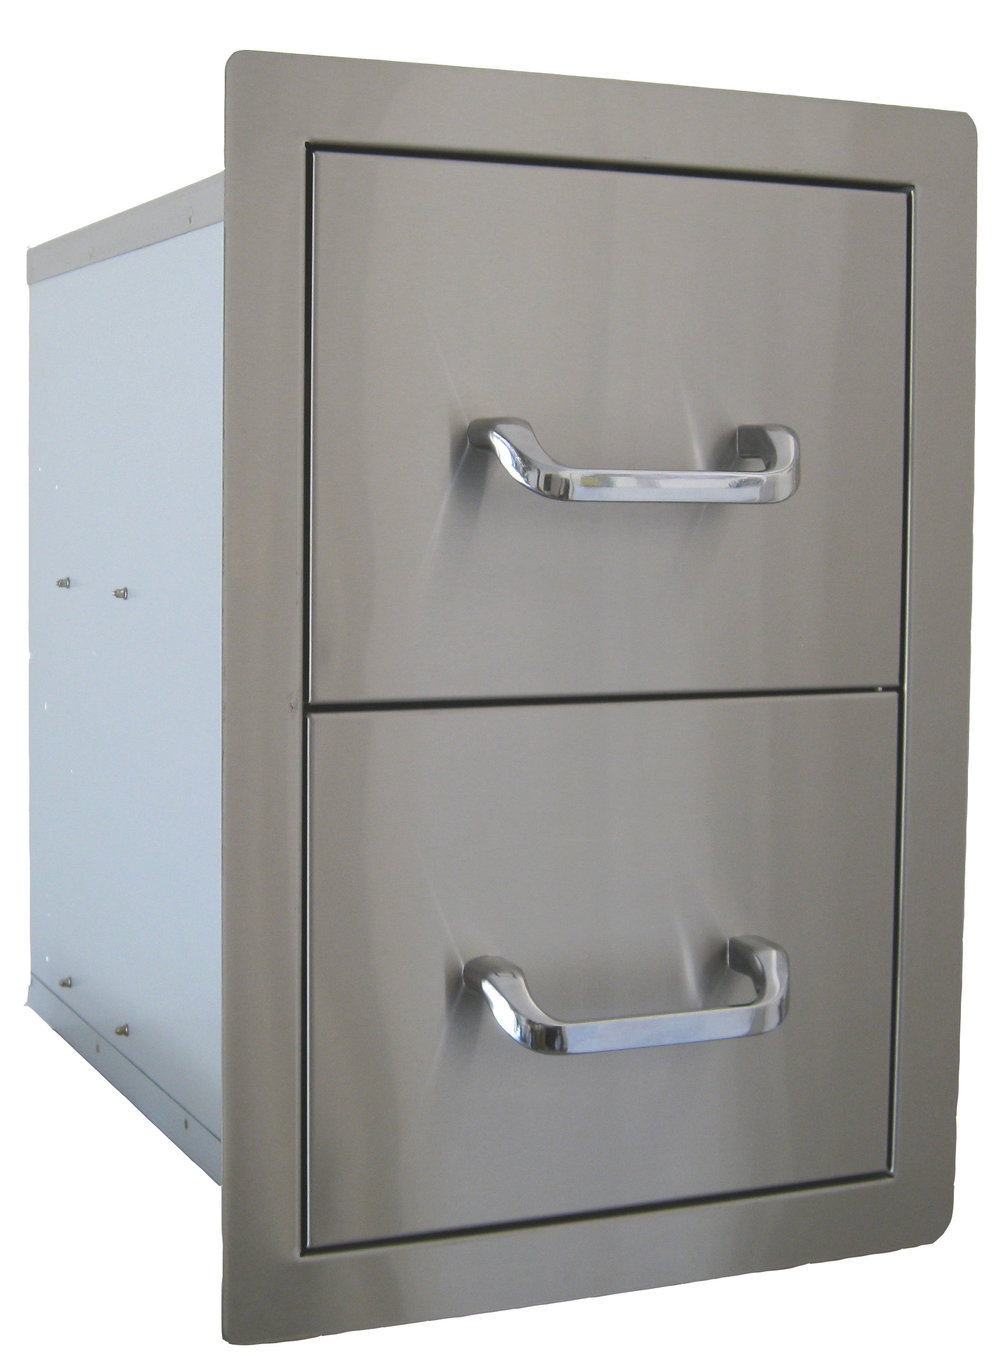 STAINLESS STEEL DOUBLE DRAWER $349 -BDBS24200